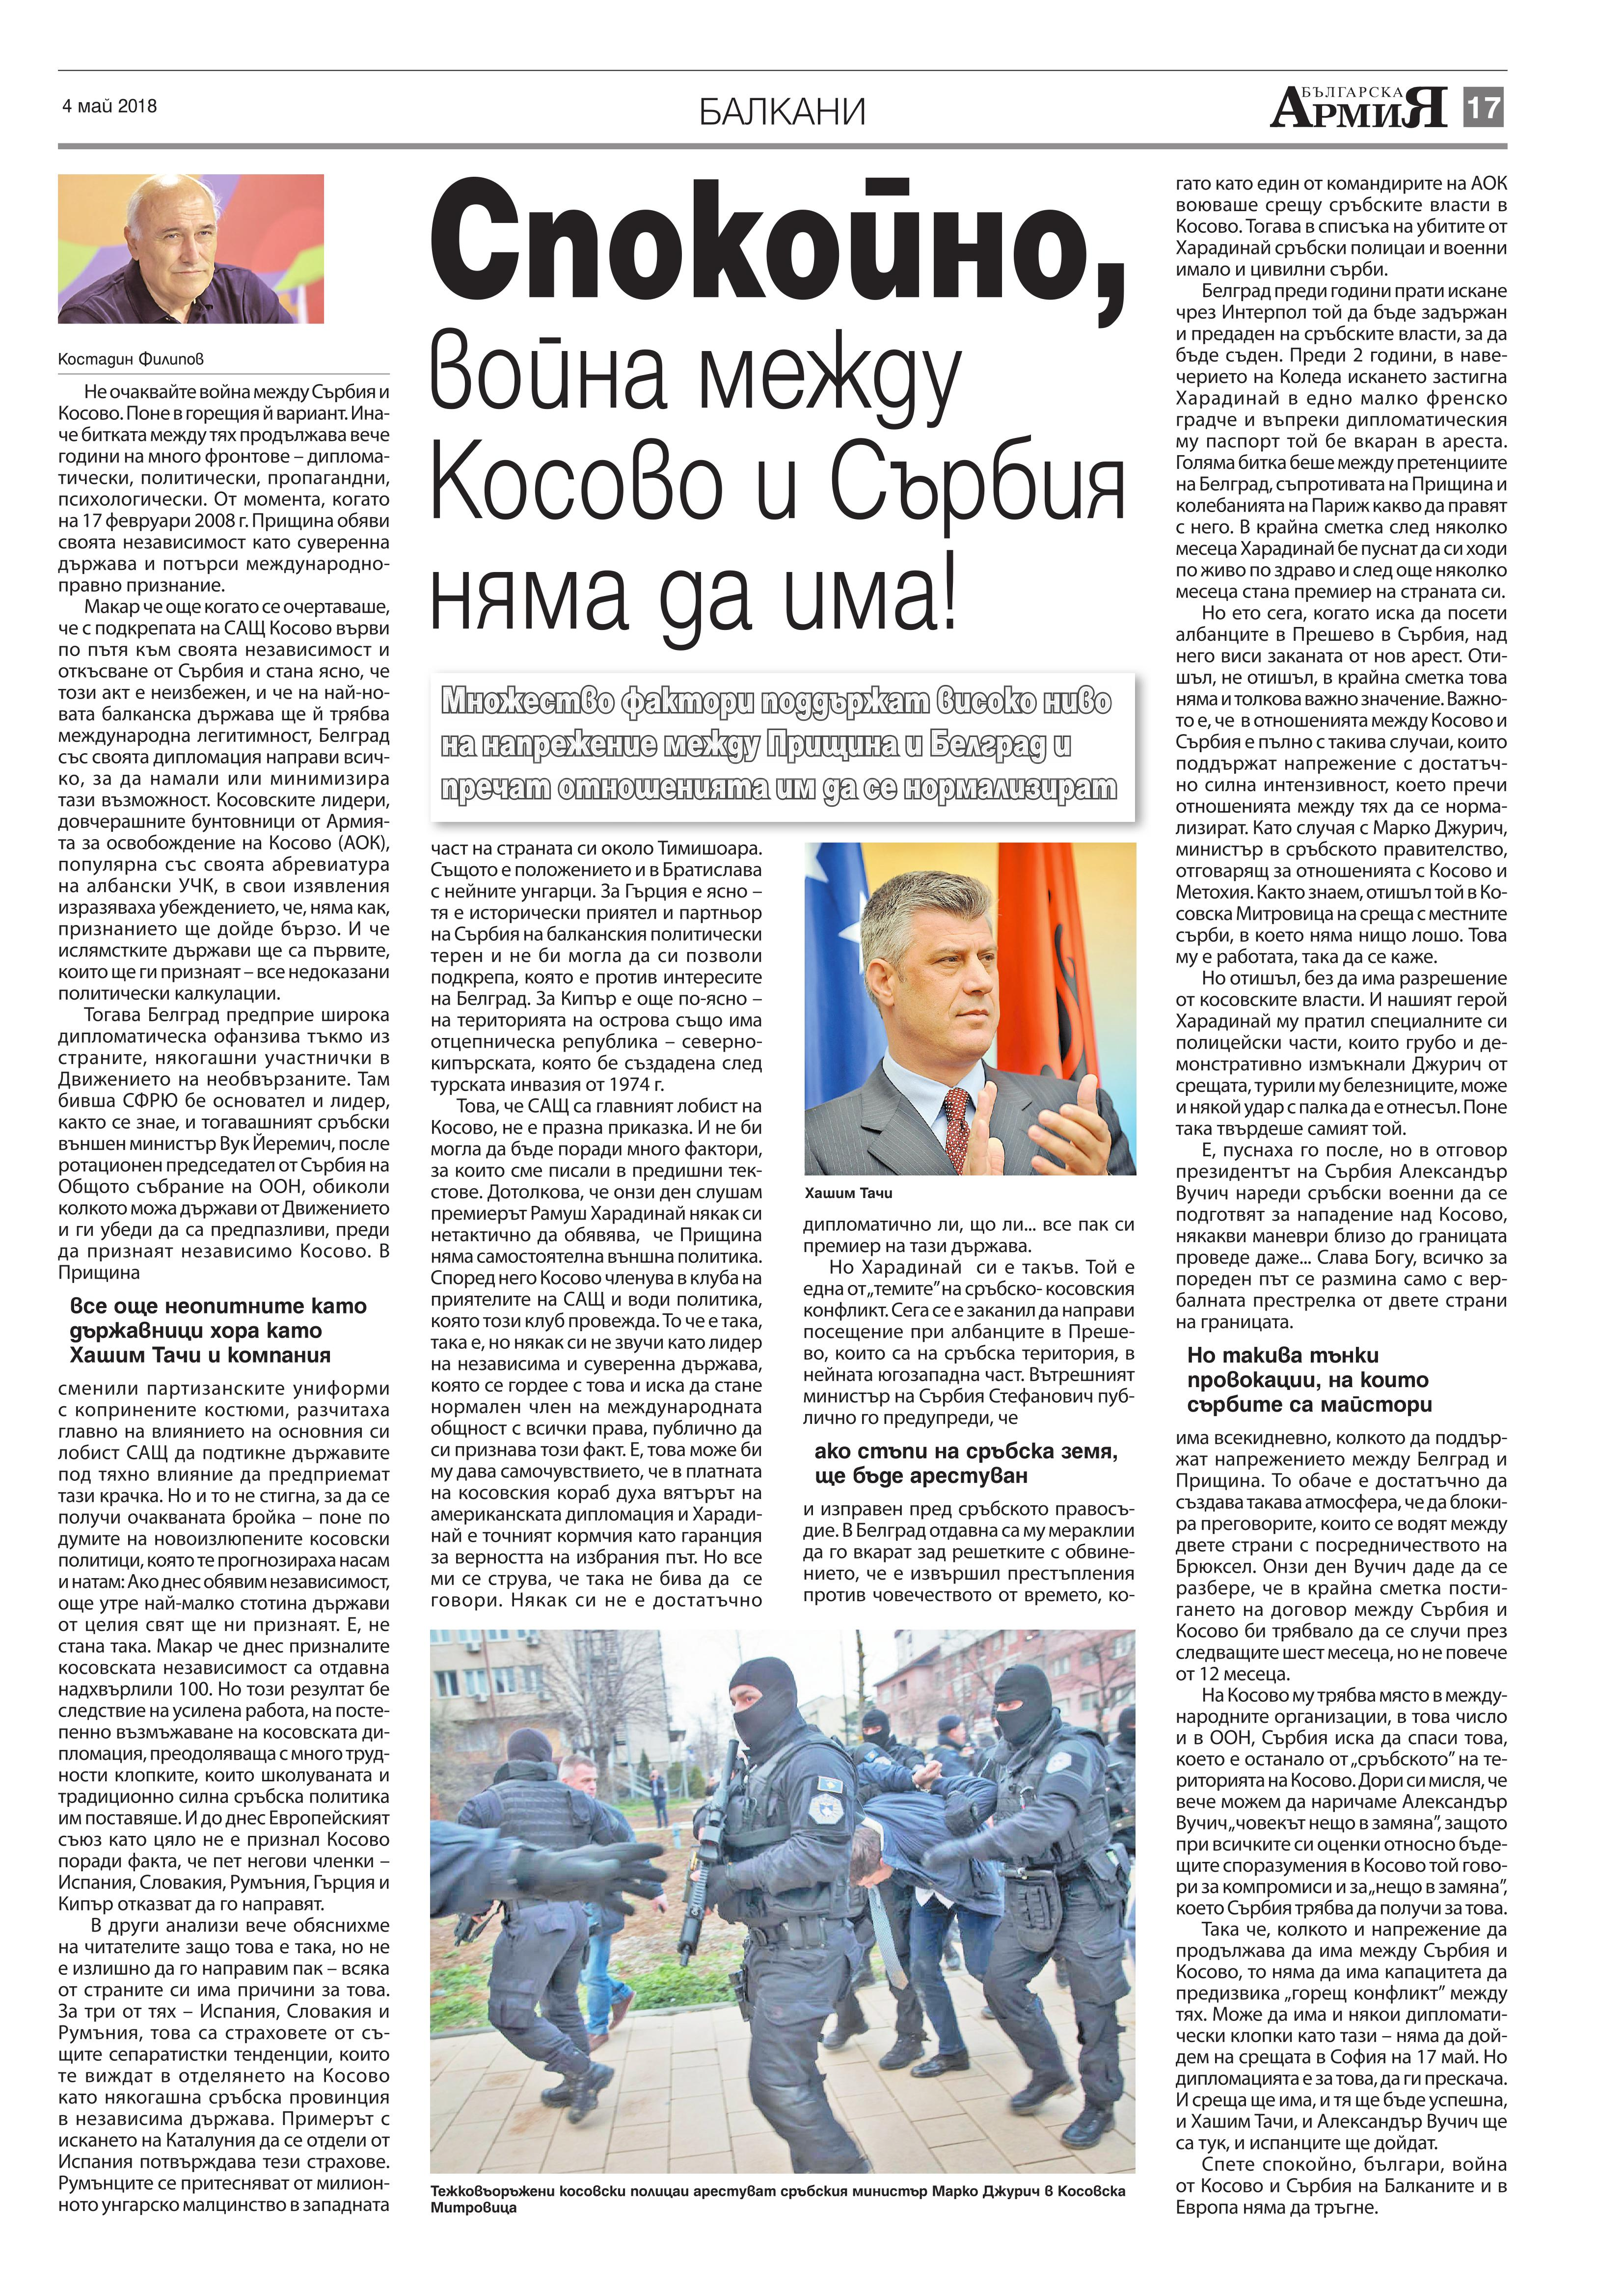 https://armymedia.bg/wp-content/uploads/2015/06/17.page1_-50.jpg